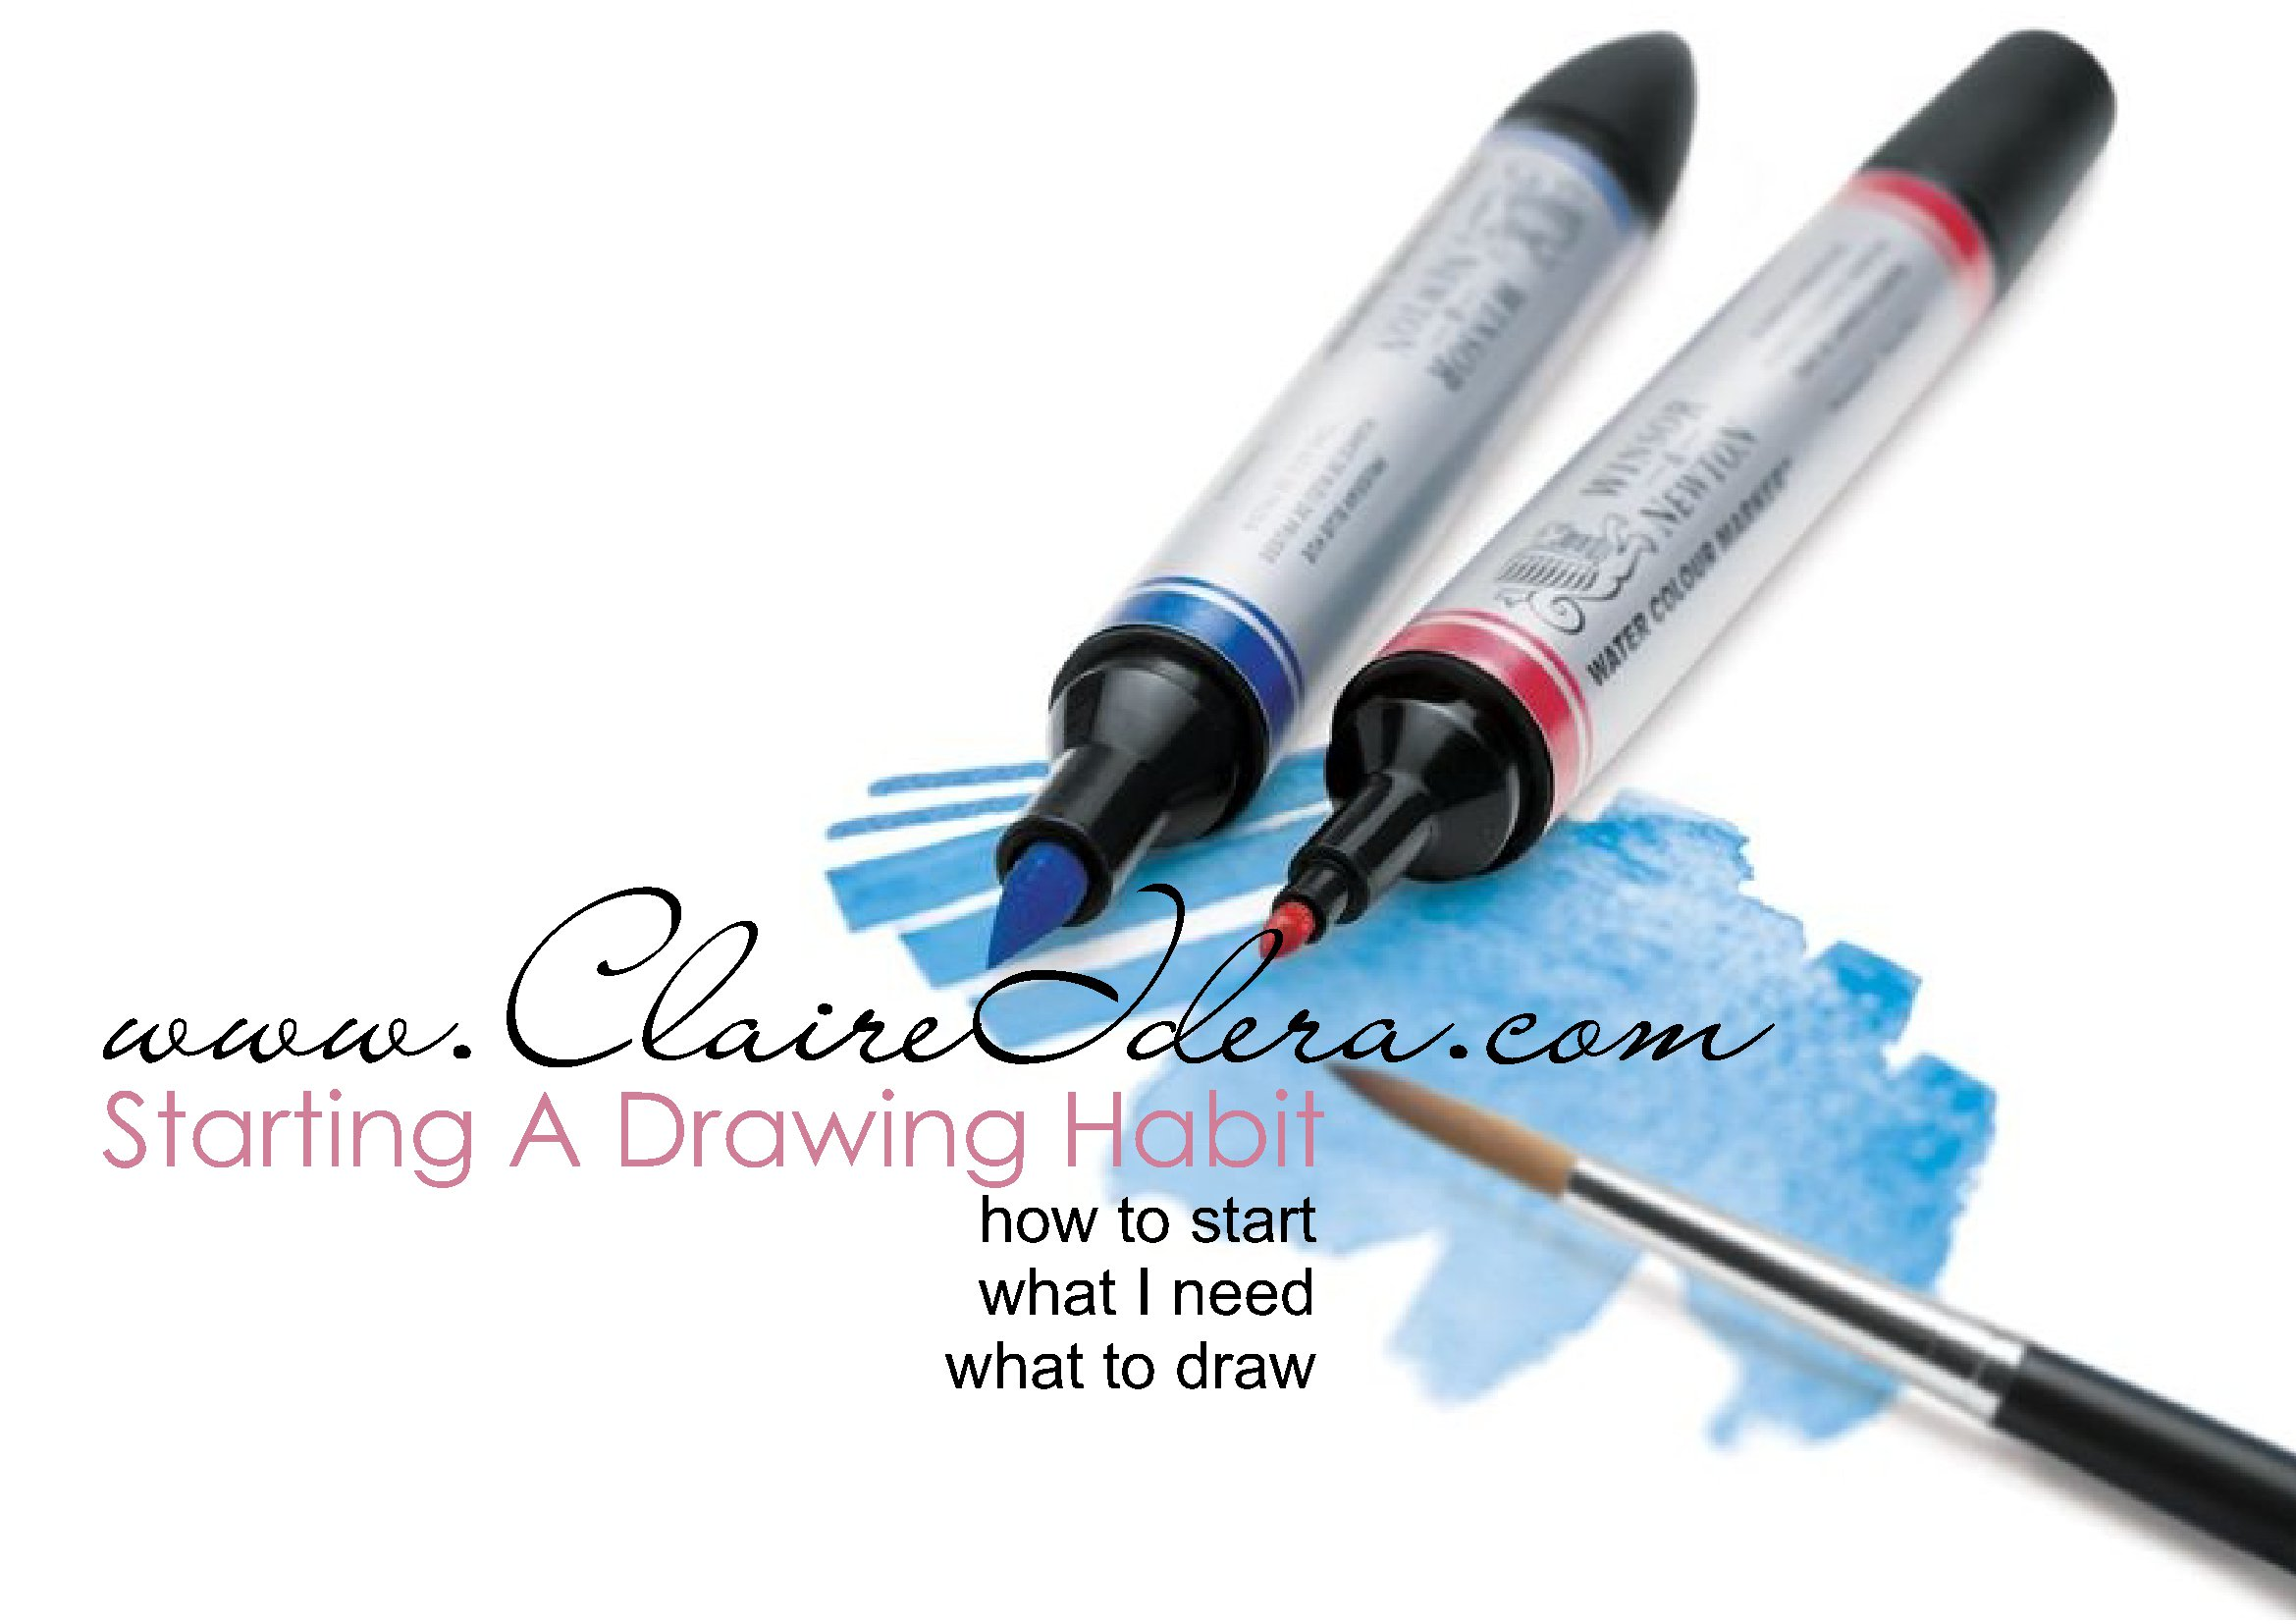 START A DRAWING HABIT AND #DrawwithClaire